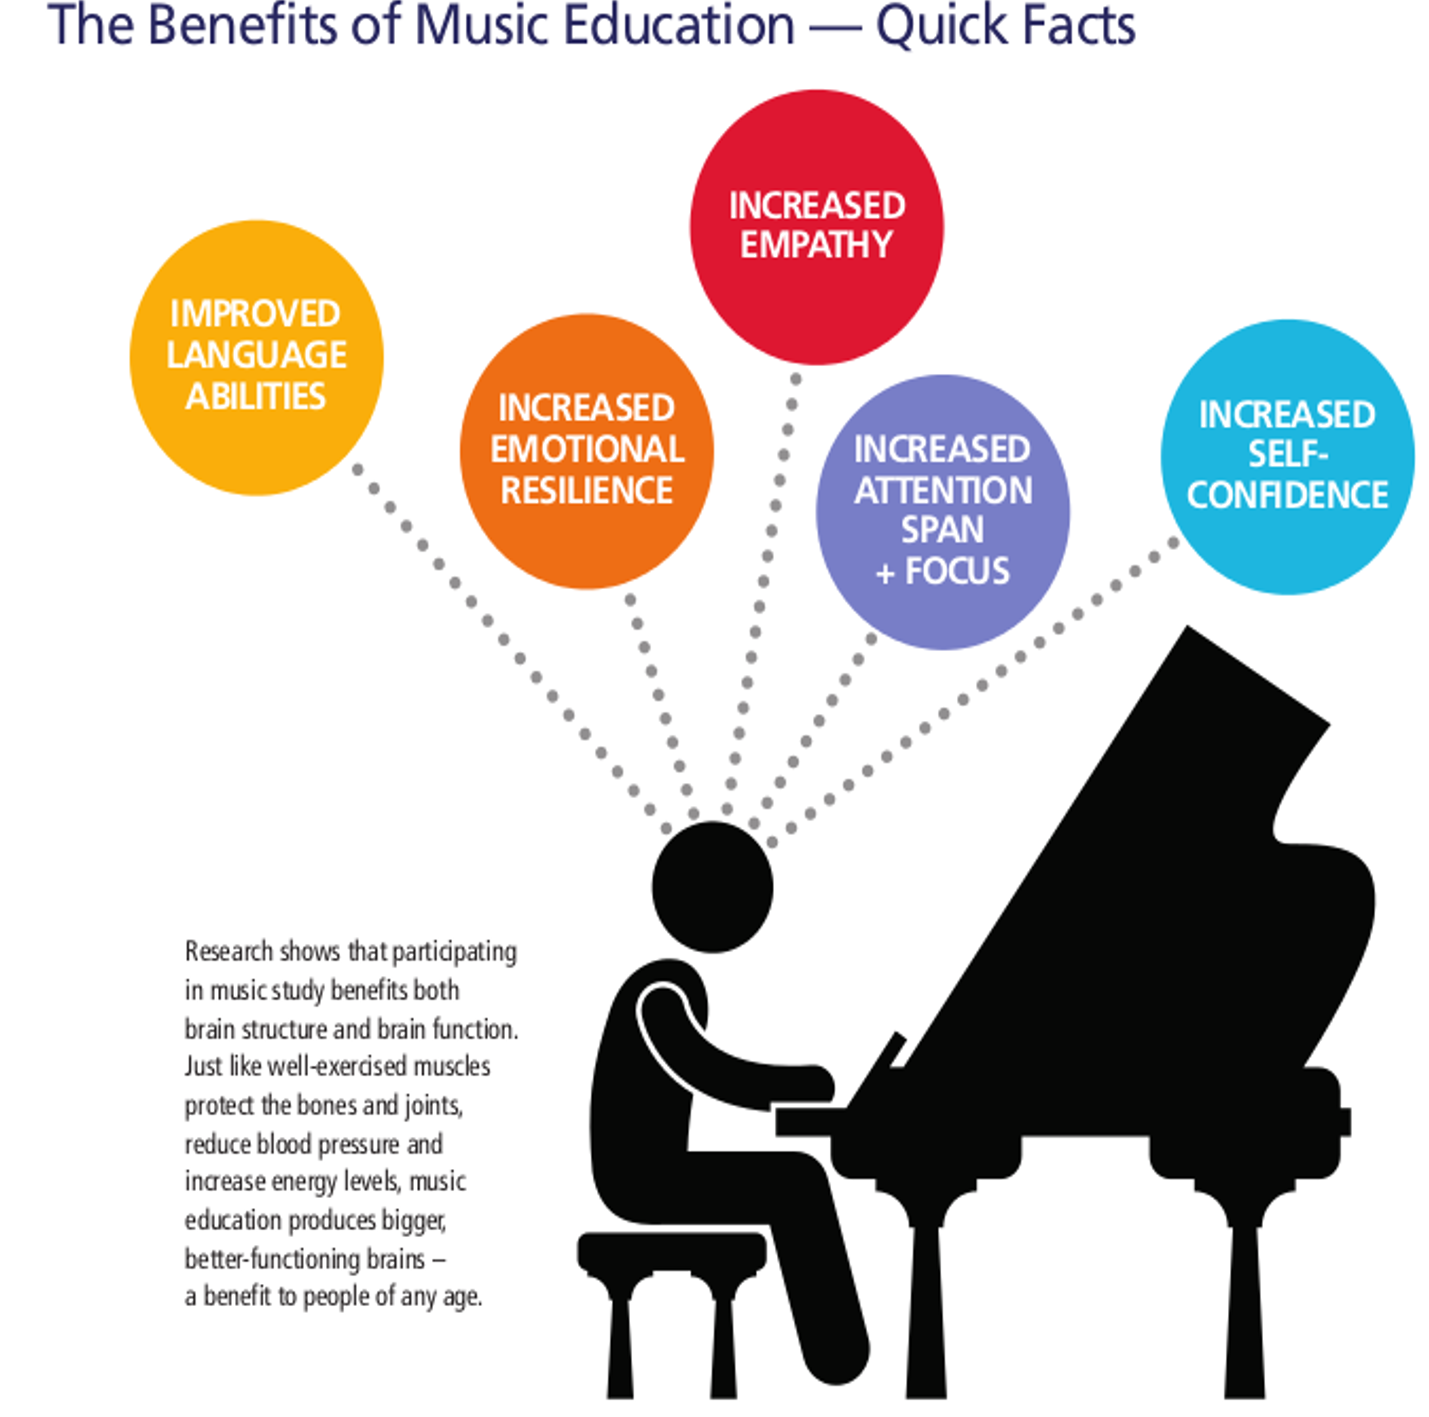 benefits of not cutting music education Pros and cons of music education cons are music education programs worth maintaining in public schools, or should they be cut.